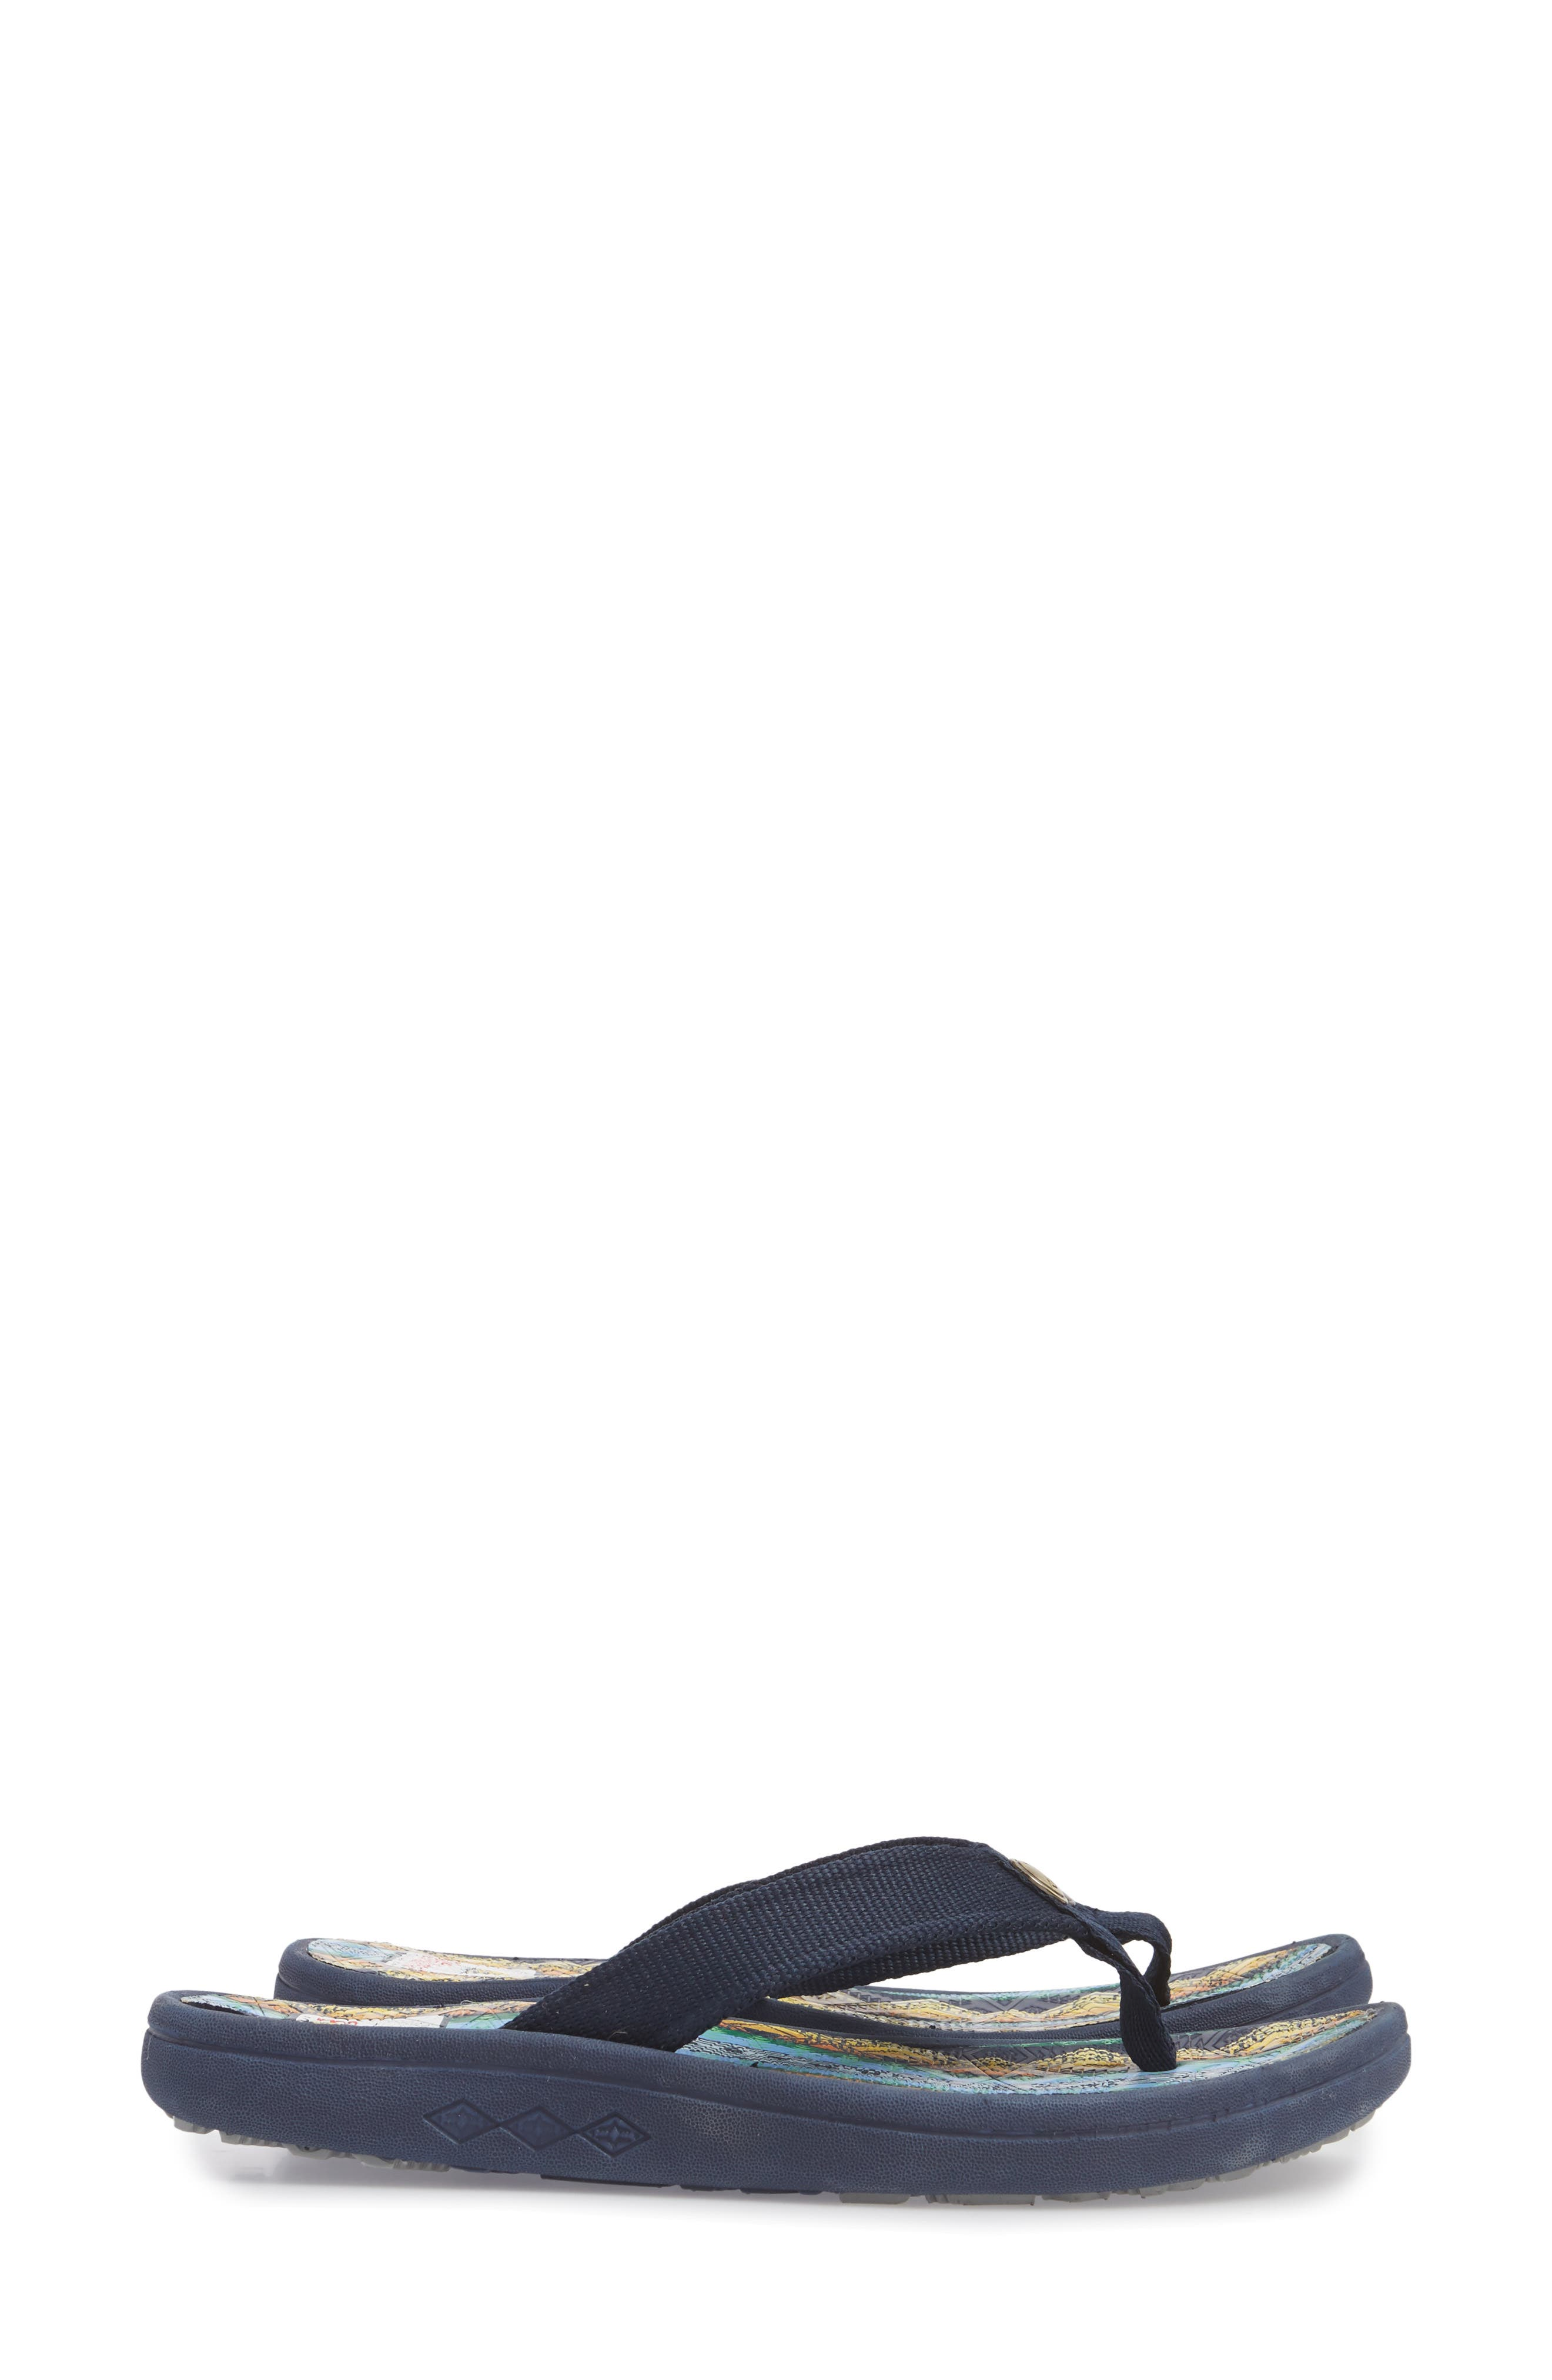 Pendleton American Treasures Flip Flop,                             Alternate thumbnail 4, color,                             NAVY